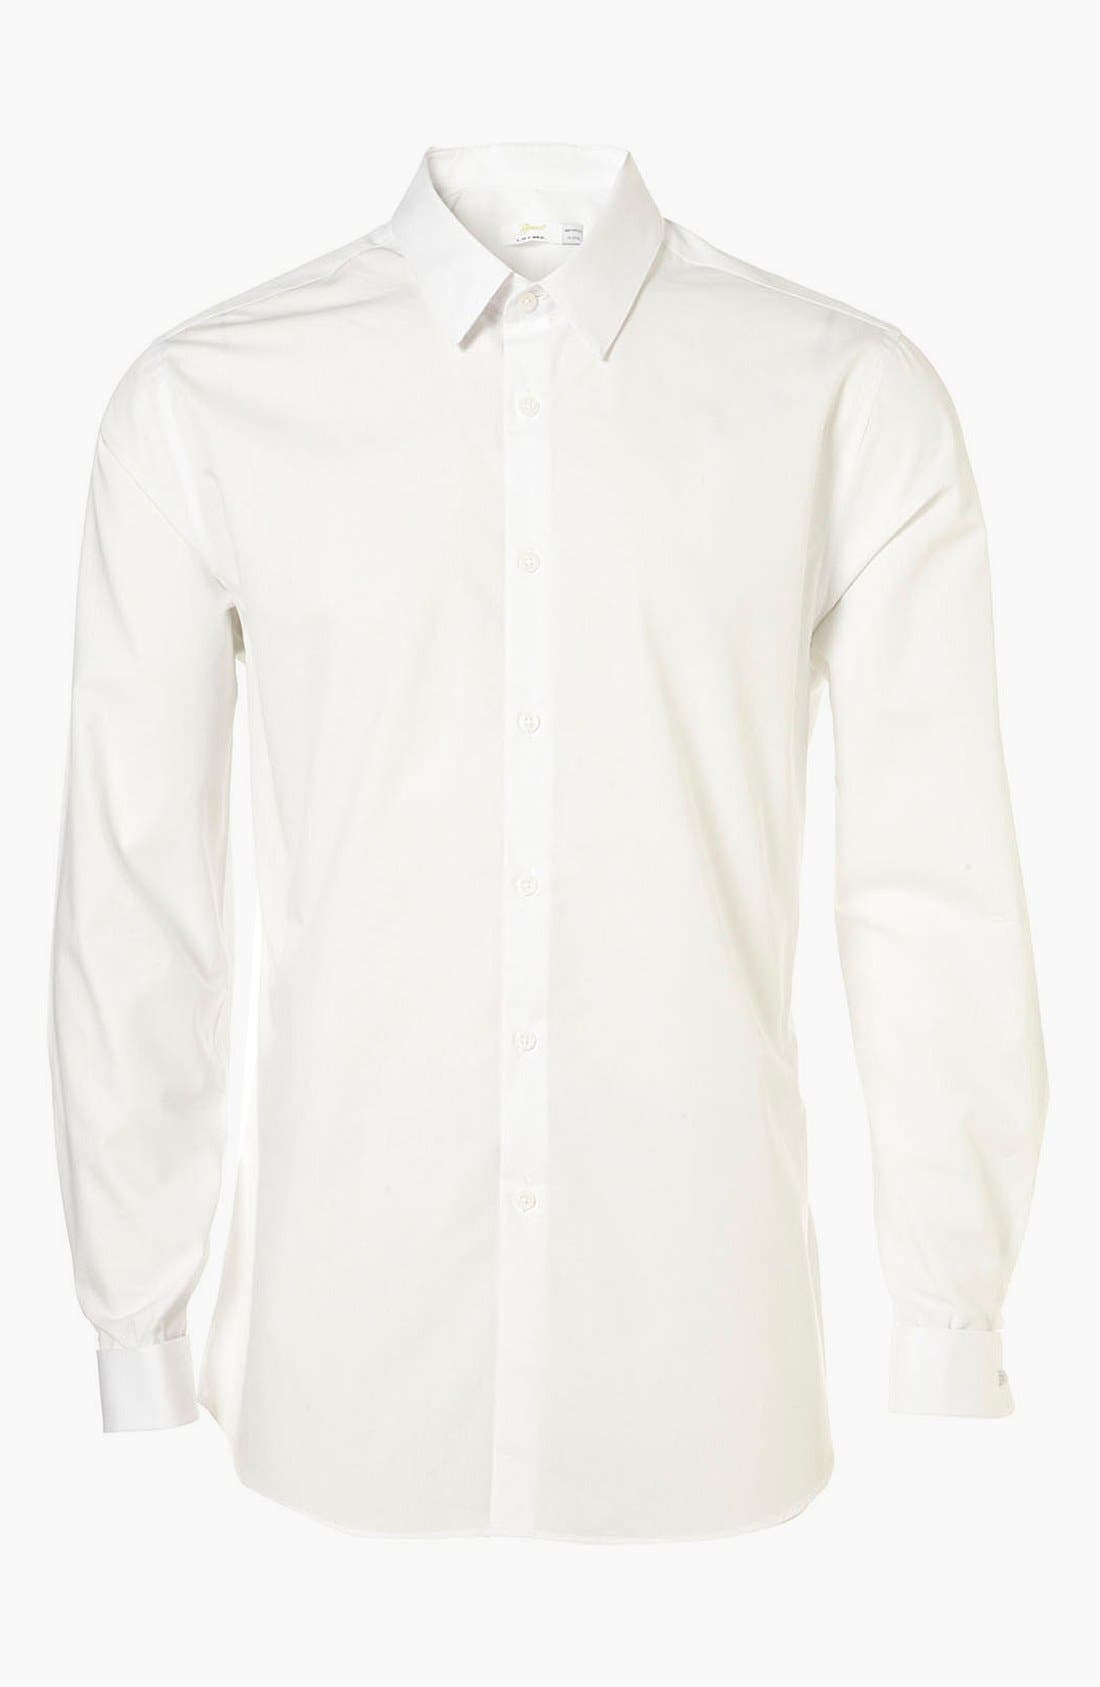 Main Image - Topman 'Smart' Slim Fit Dress Shirt